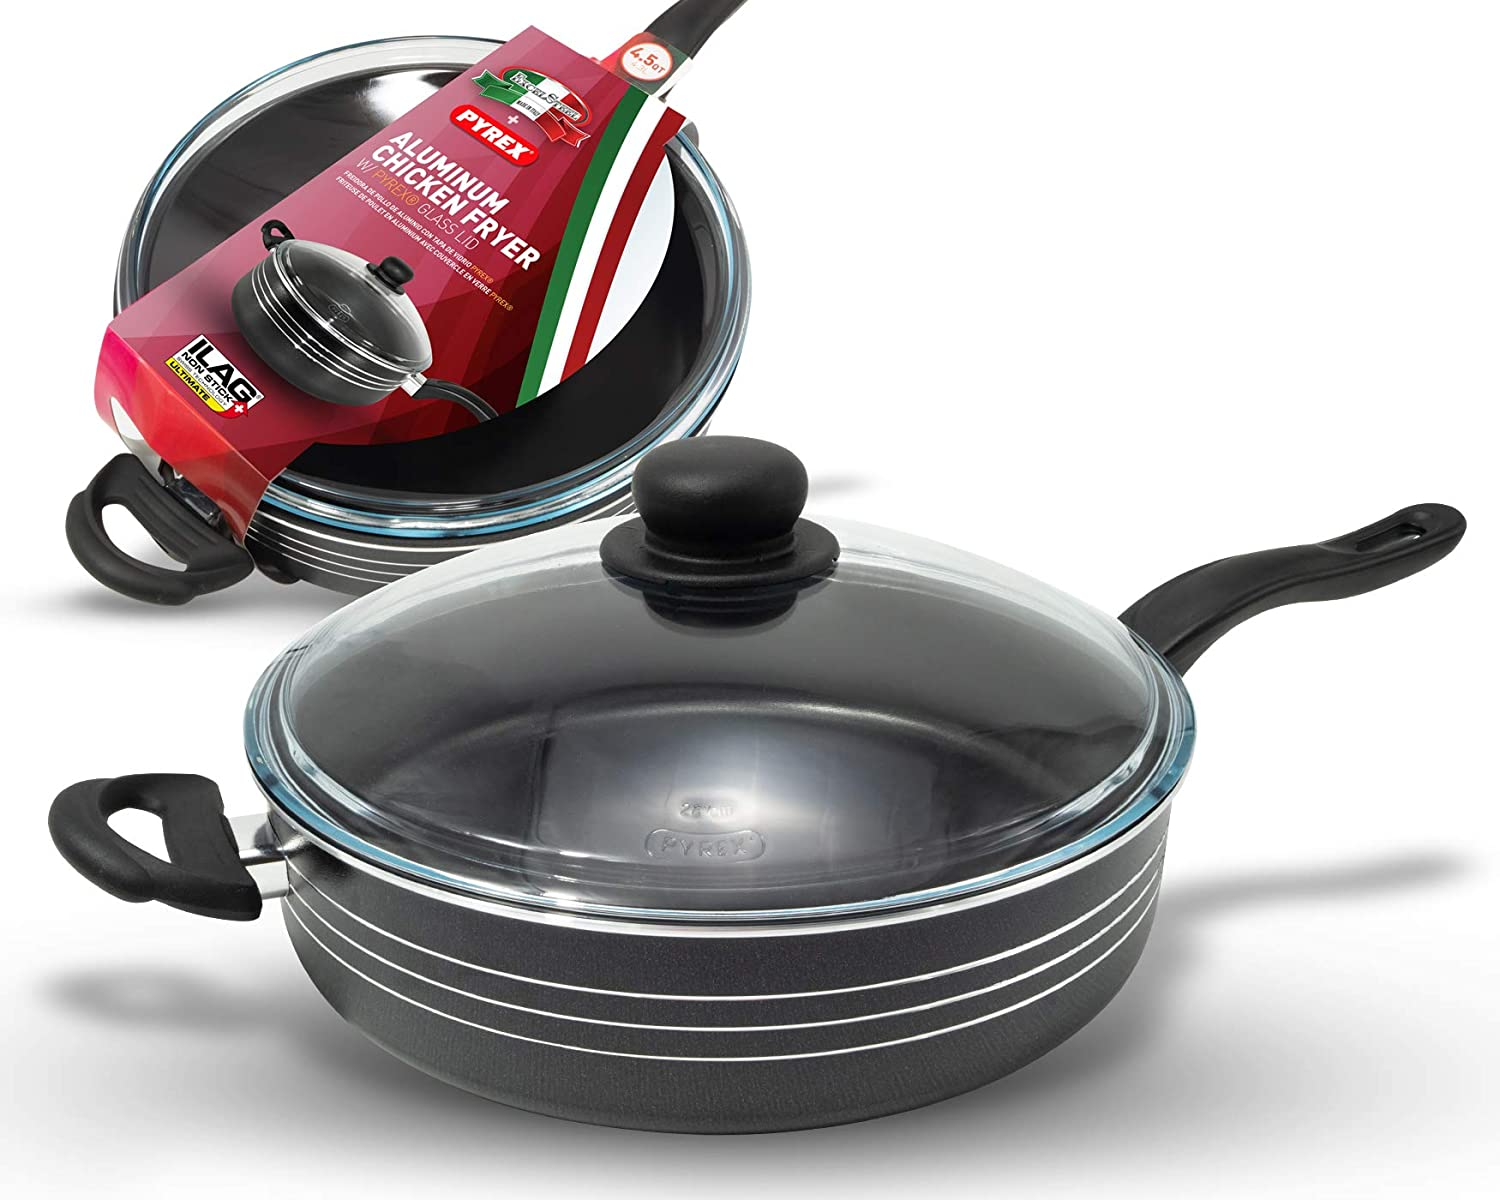 ExcelSteel W/Pyrex Glass Lid and ILAG Non-Stick Coating Aluminum Chicken Fryer, 4.5 Qt, Black